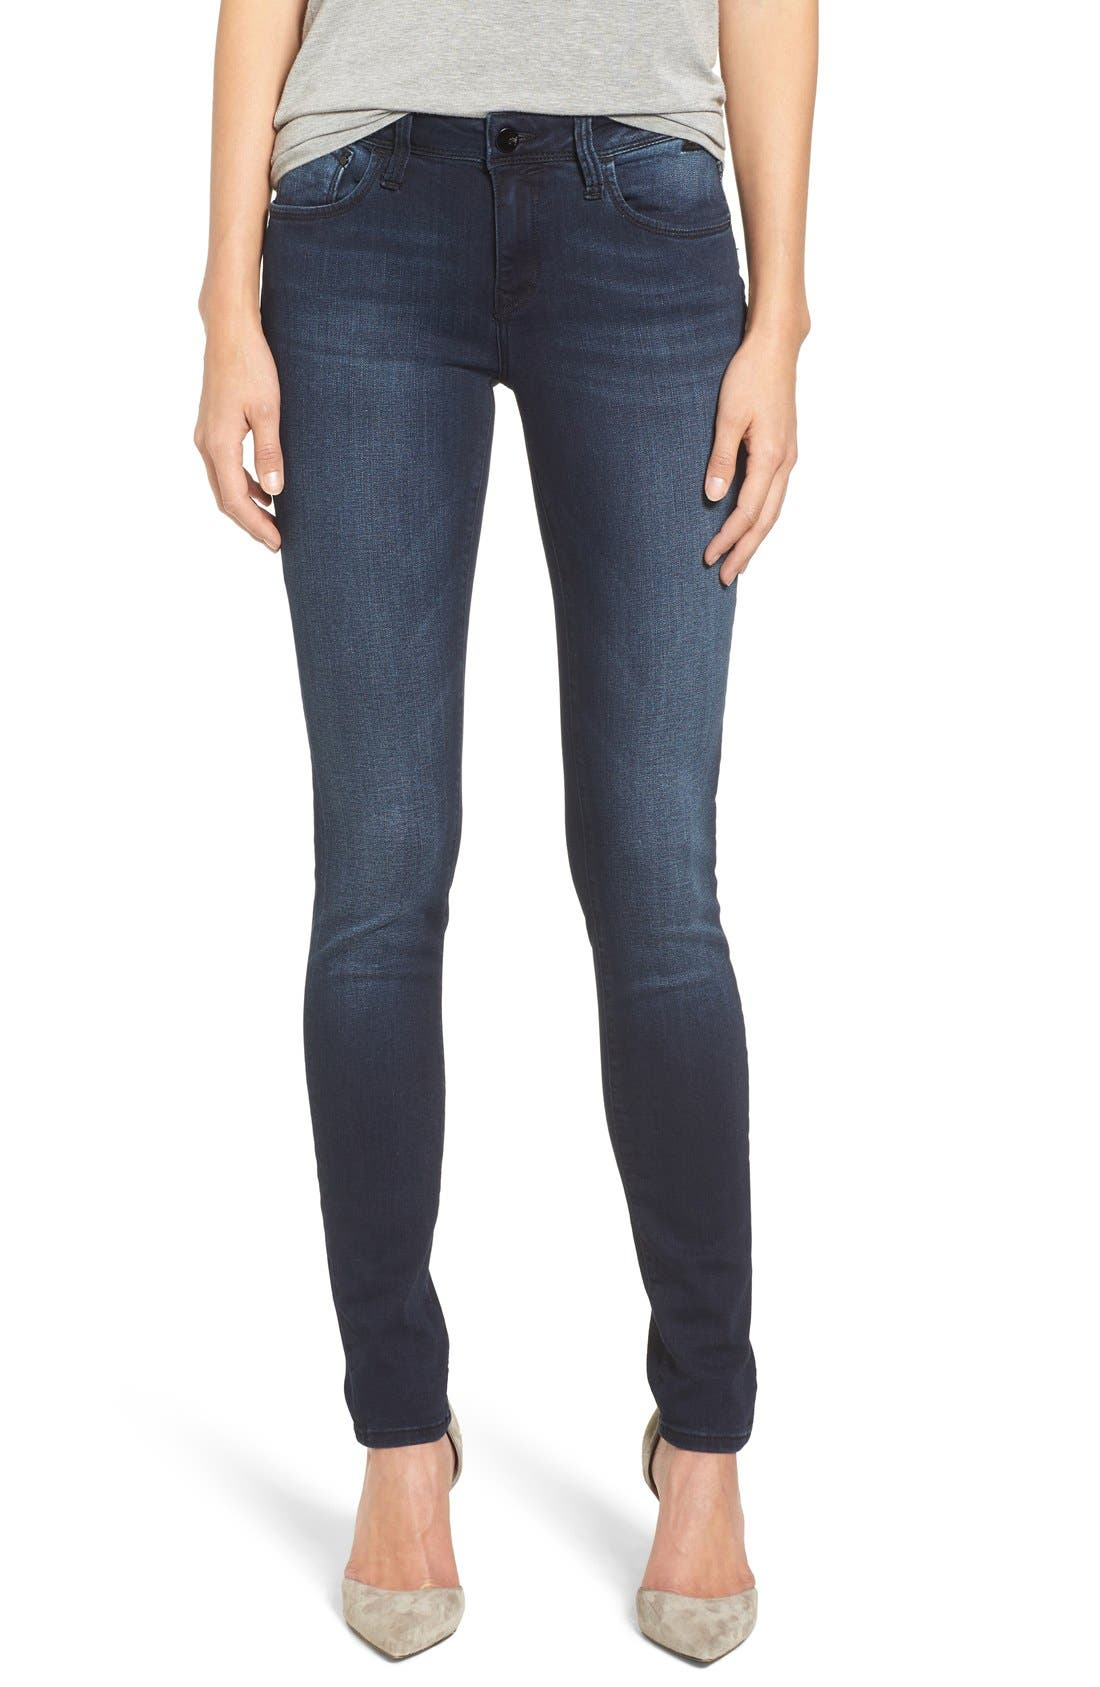 Main Image - Mavi Jeans Gold Alexa Stretch Skinny Jeans (Deep Feather) (Regular & Petite)